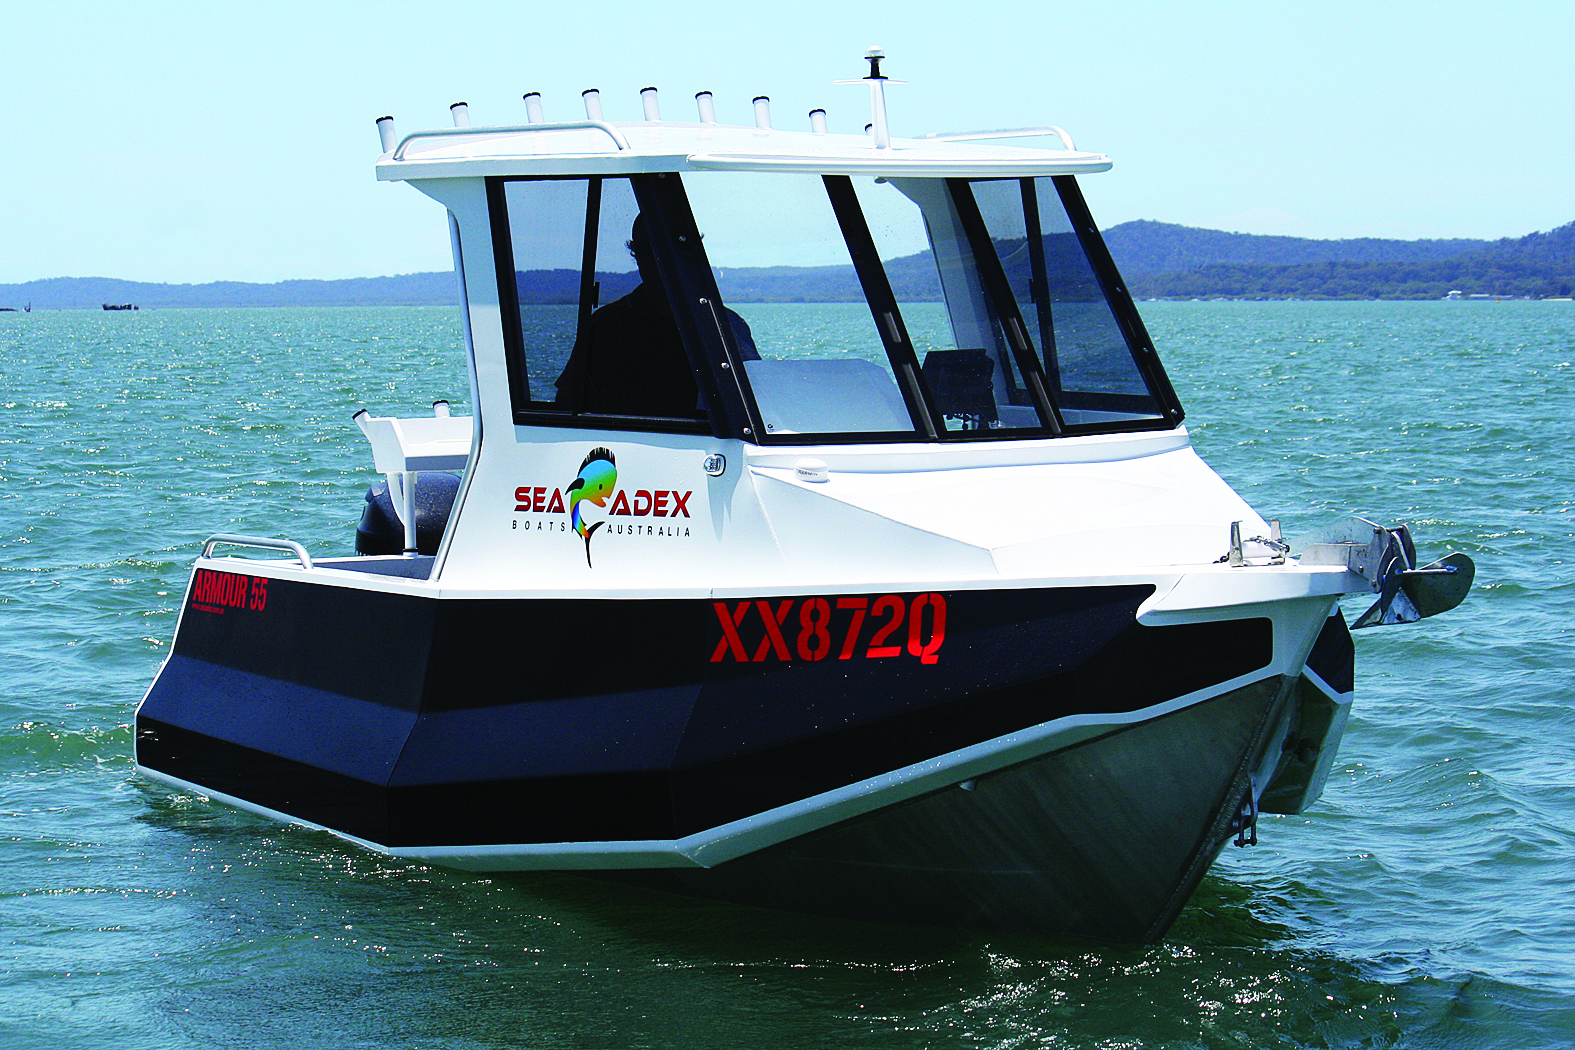 The Sea Adex Armour 55 cuts a mean figure on the water.